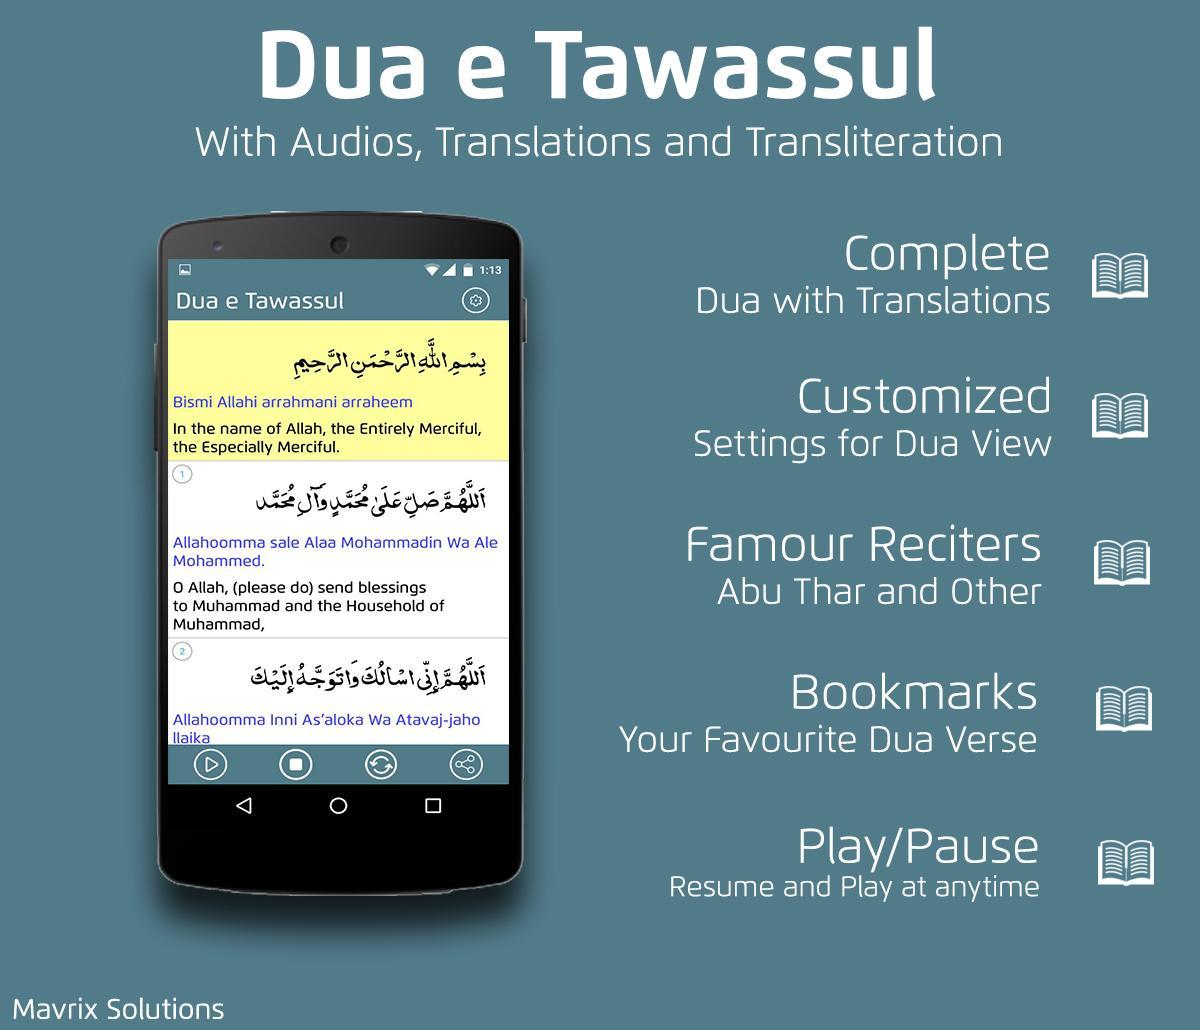 Dua e Tawassul for Android - APK Download